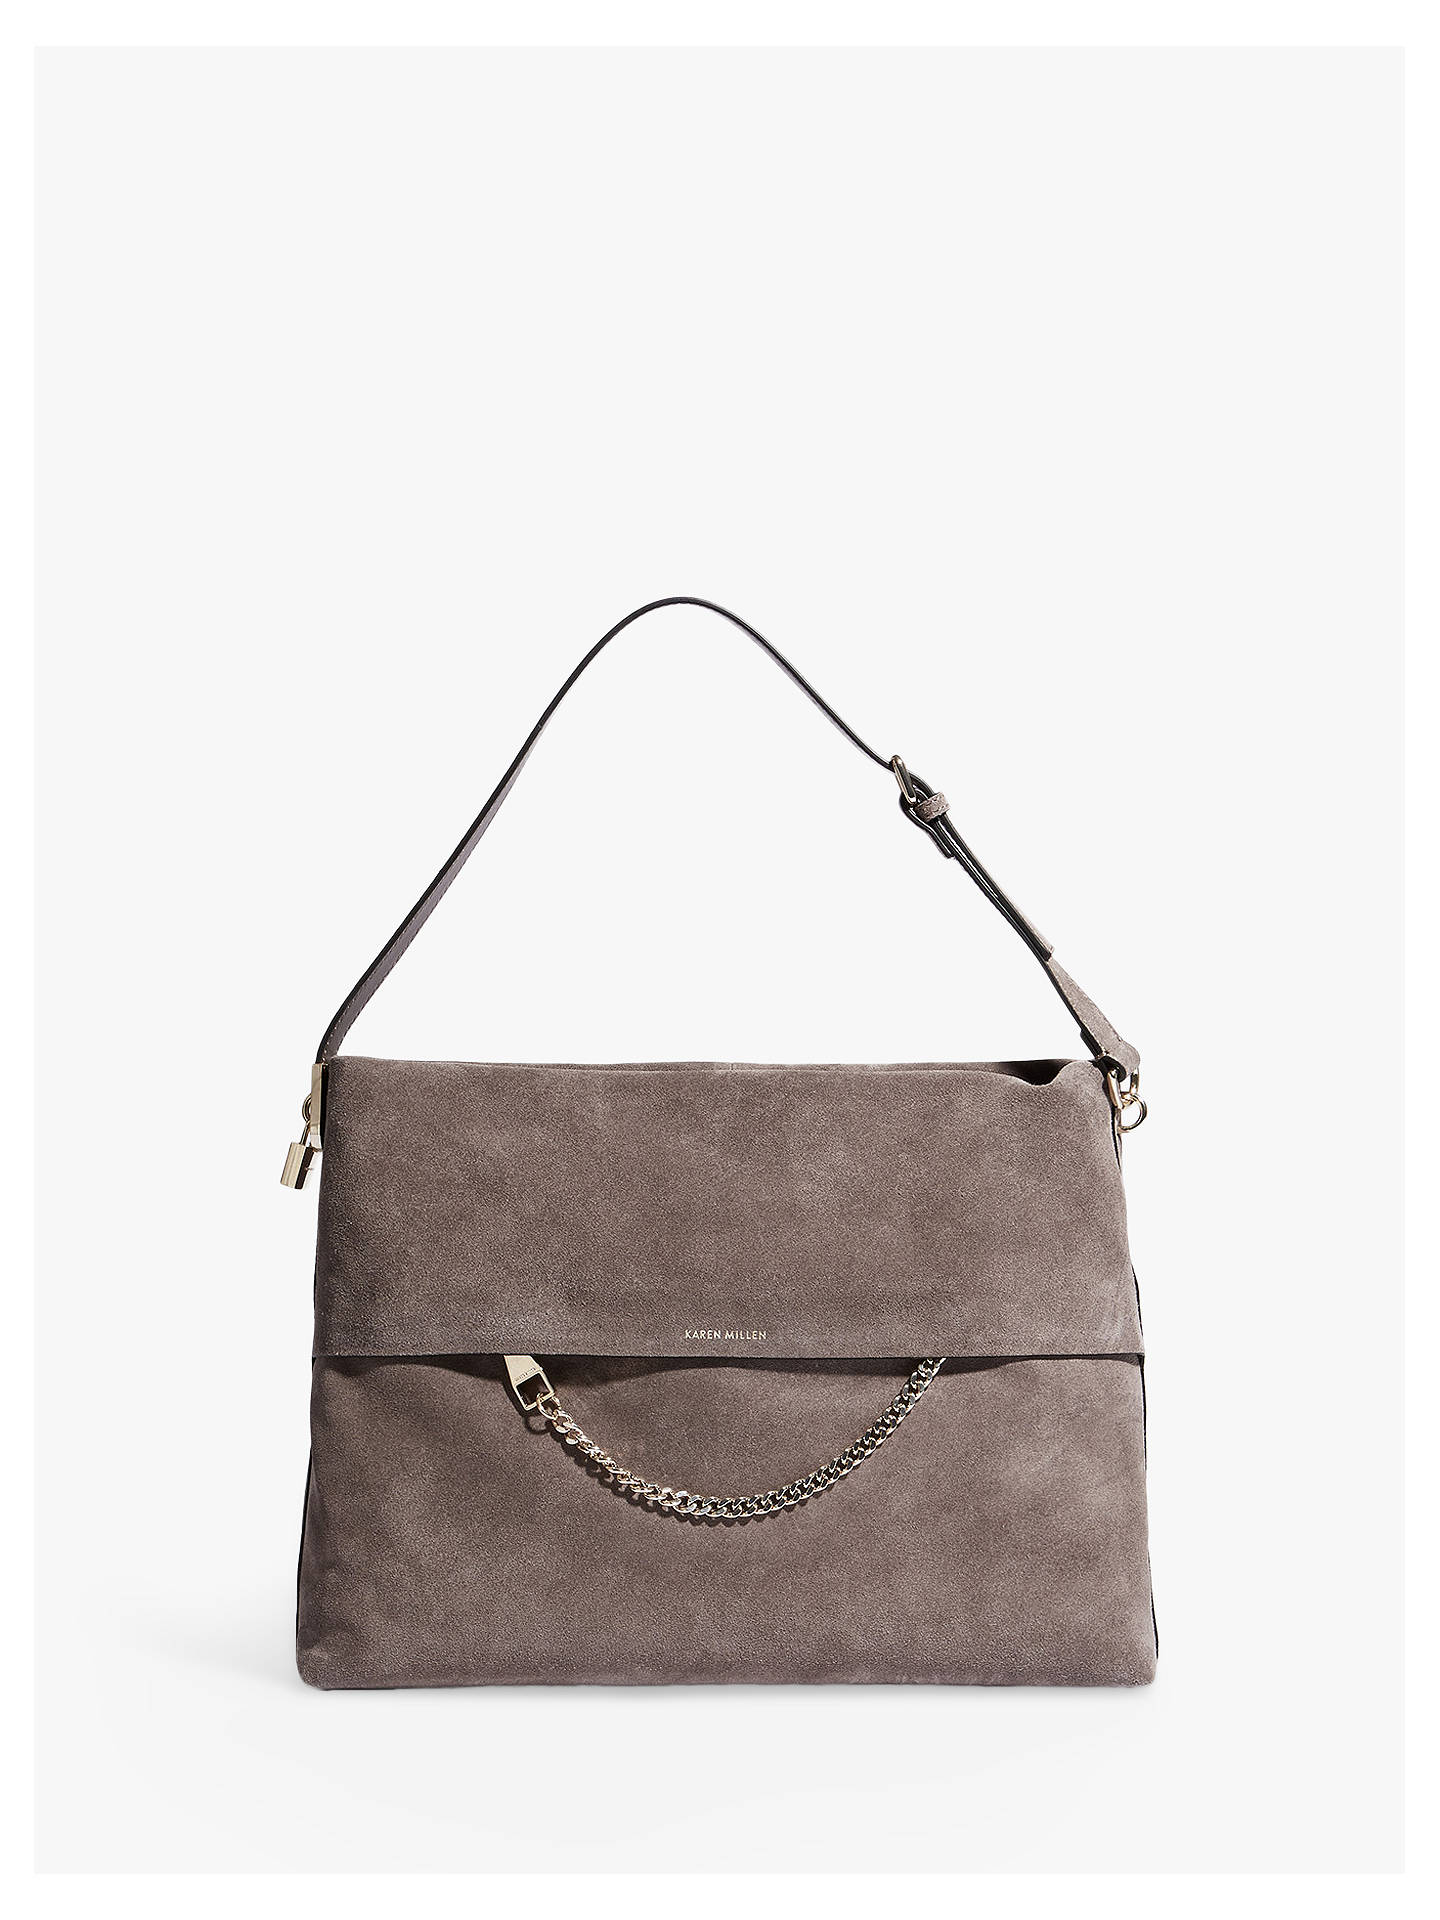 2d18984238 Buy Karen Millen Slouchy Textured Shoulder Bag, Grey Online at  johnlewis.com ...